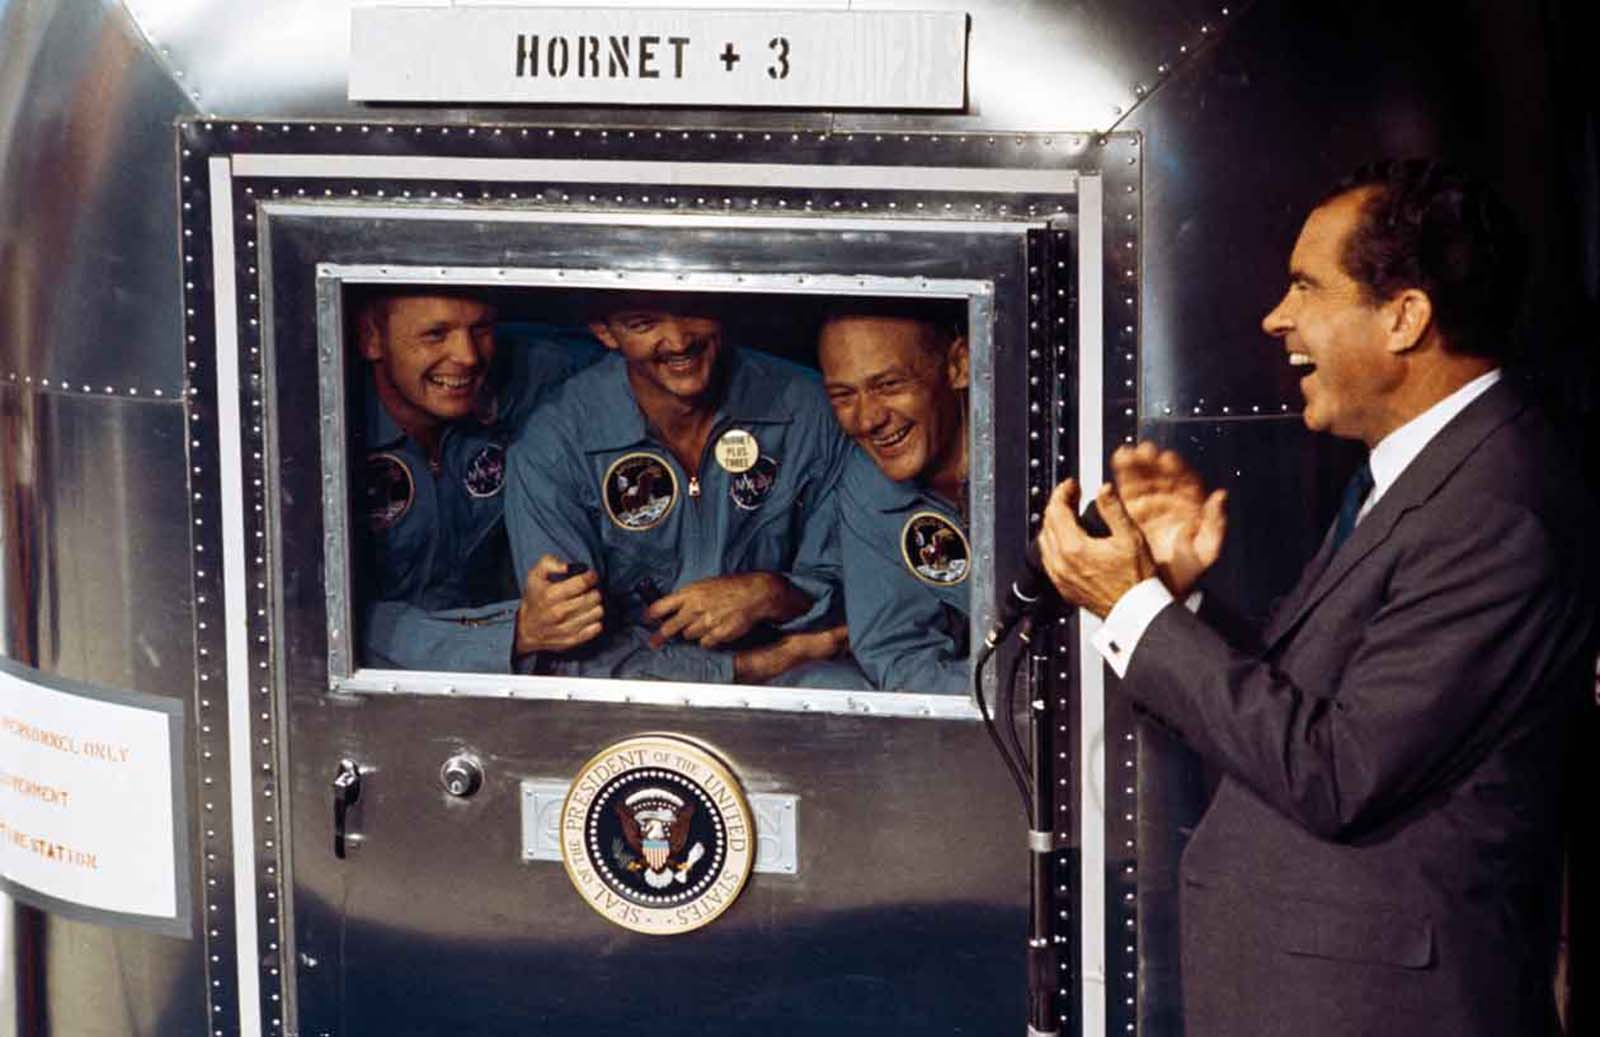 From left to right, Neil Armstrong, Michael Collins and Edwin 'Buzz' Aldrin Jnr, the crew of the historic Apollo 11 moon landing mission are subjected to a period of quarantine upon their return to earth. Through the window of their Mobile Quarantine Facility, they hold a conversation with President Richard Nixon.